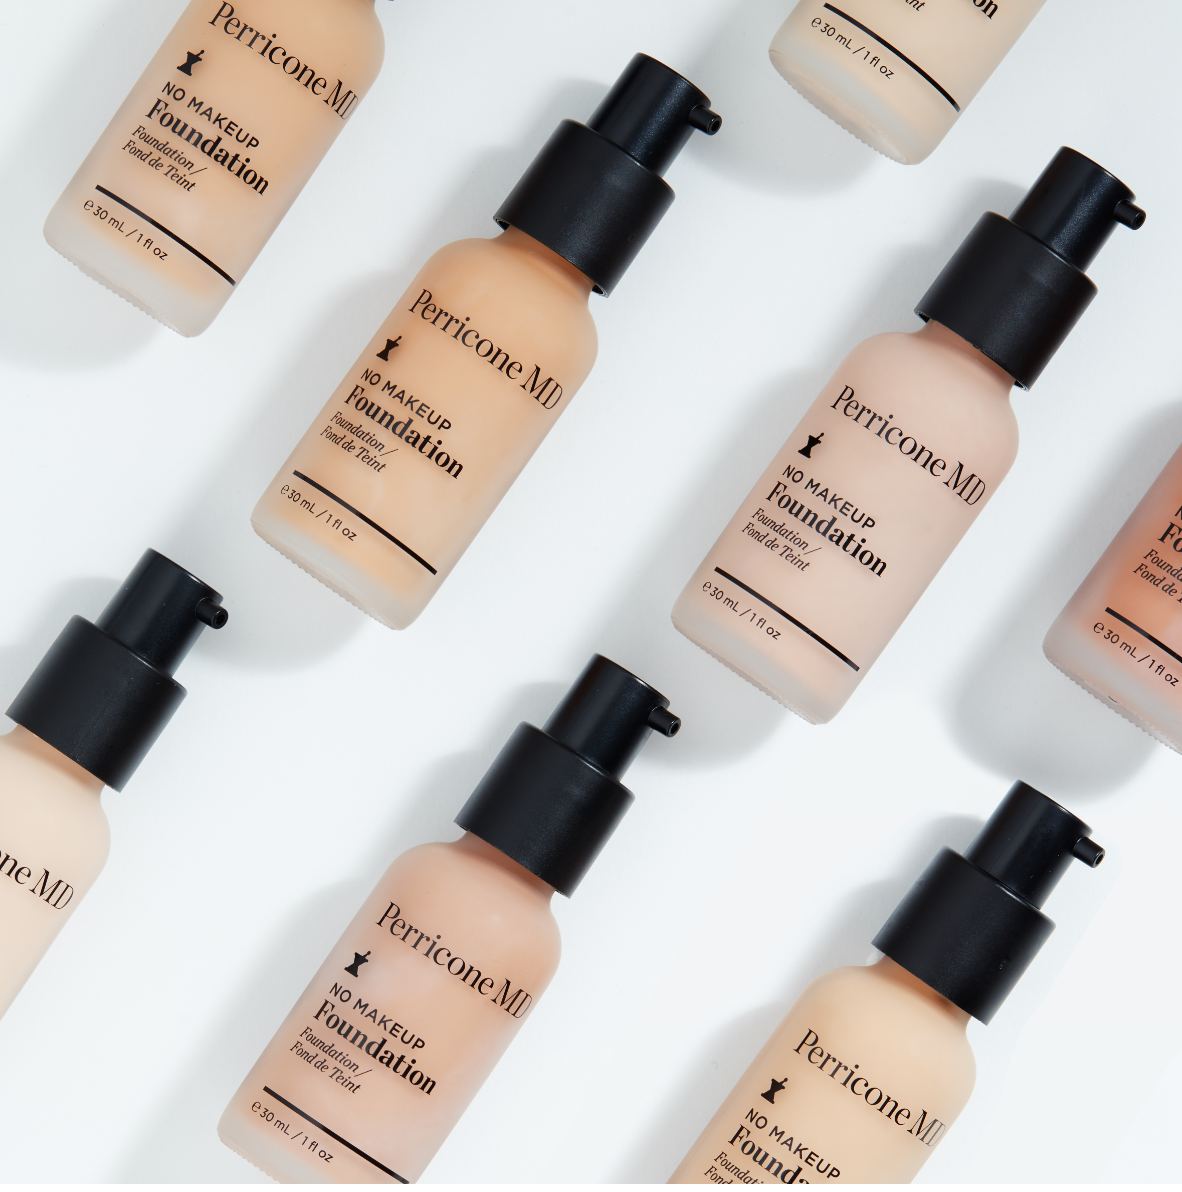 But First, Skincare: How-To Make Aging Skin Look and Feel Its Best (Naturally) | No Makeup Foundation | Perricone MD